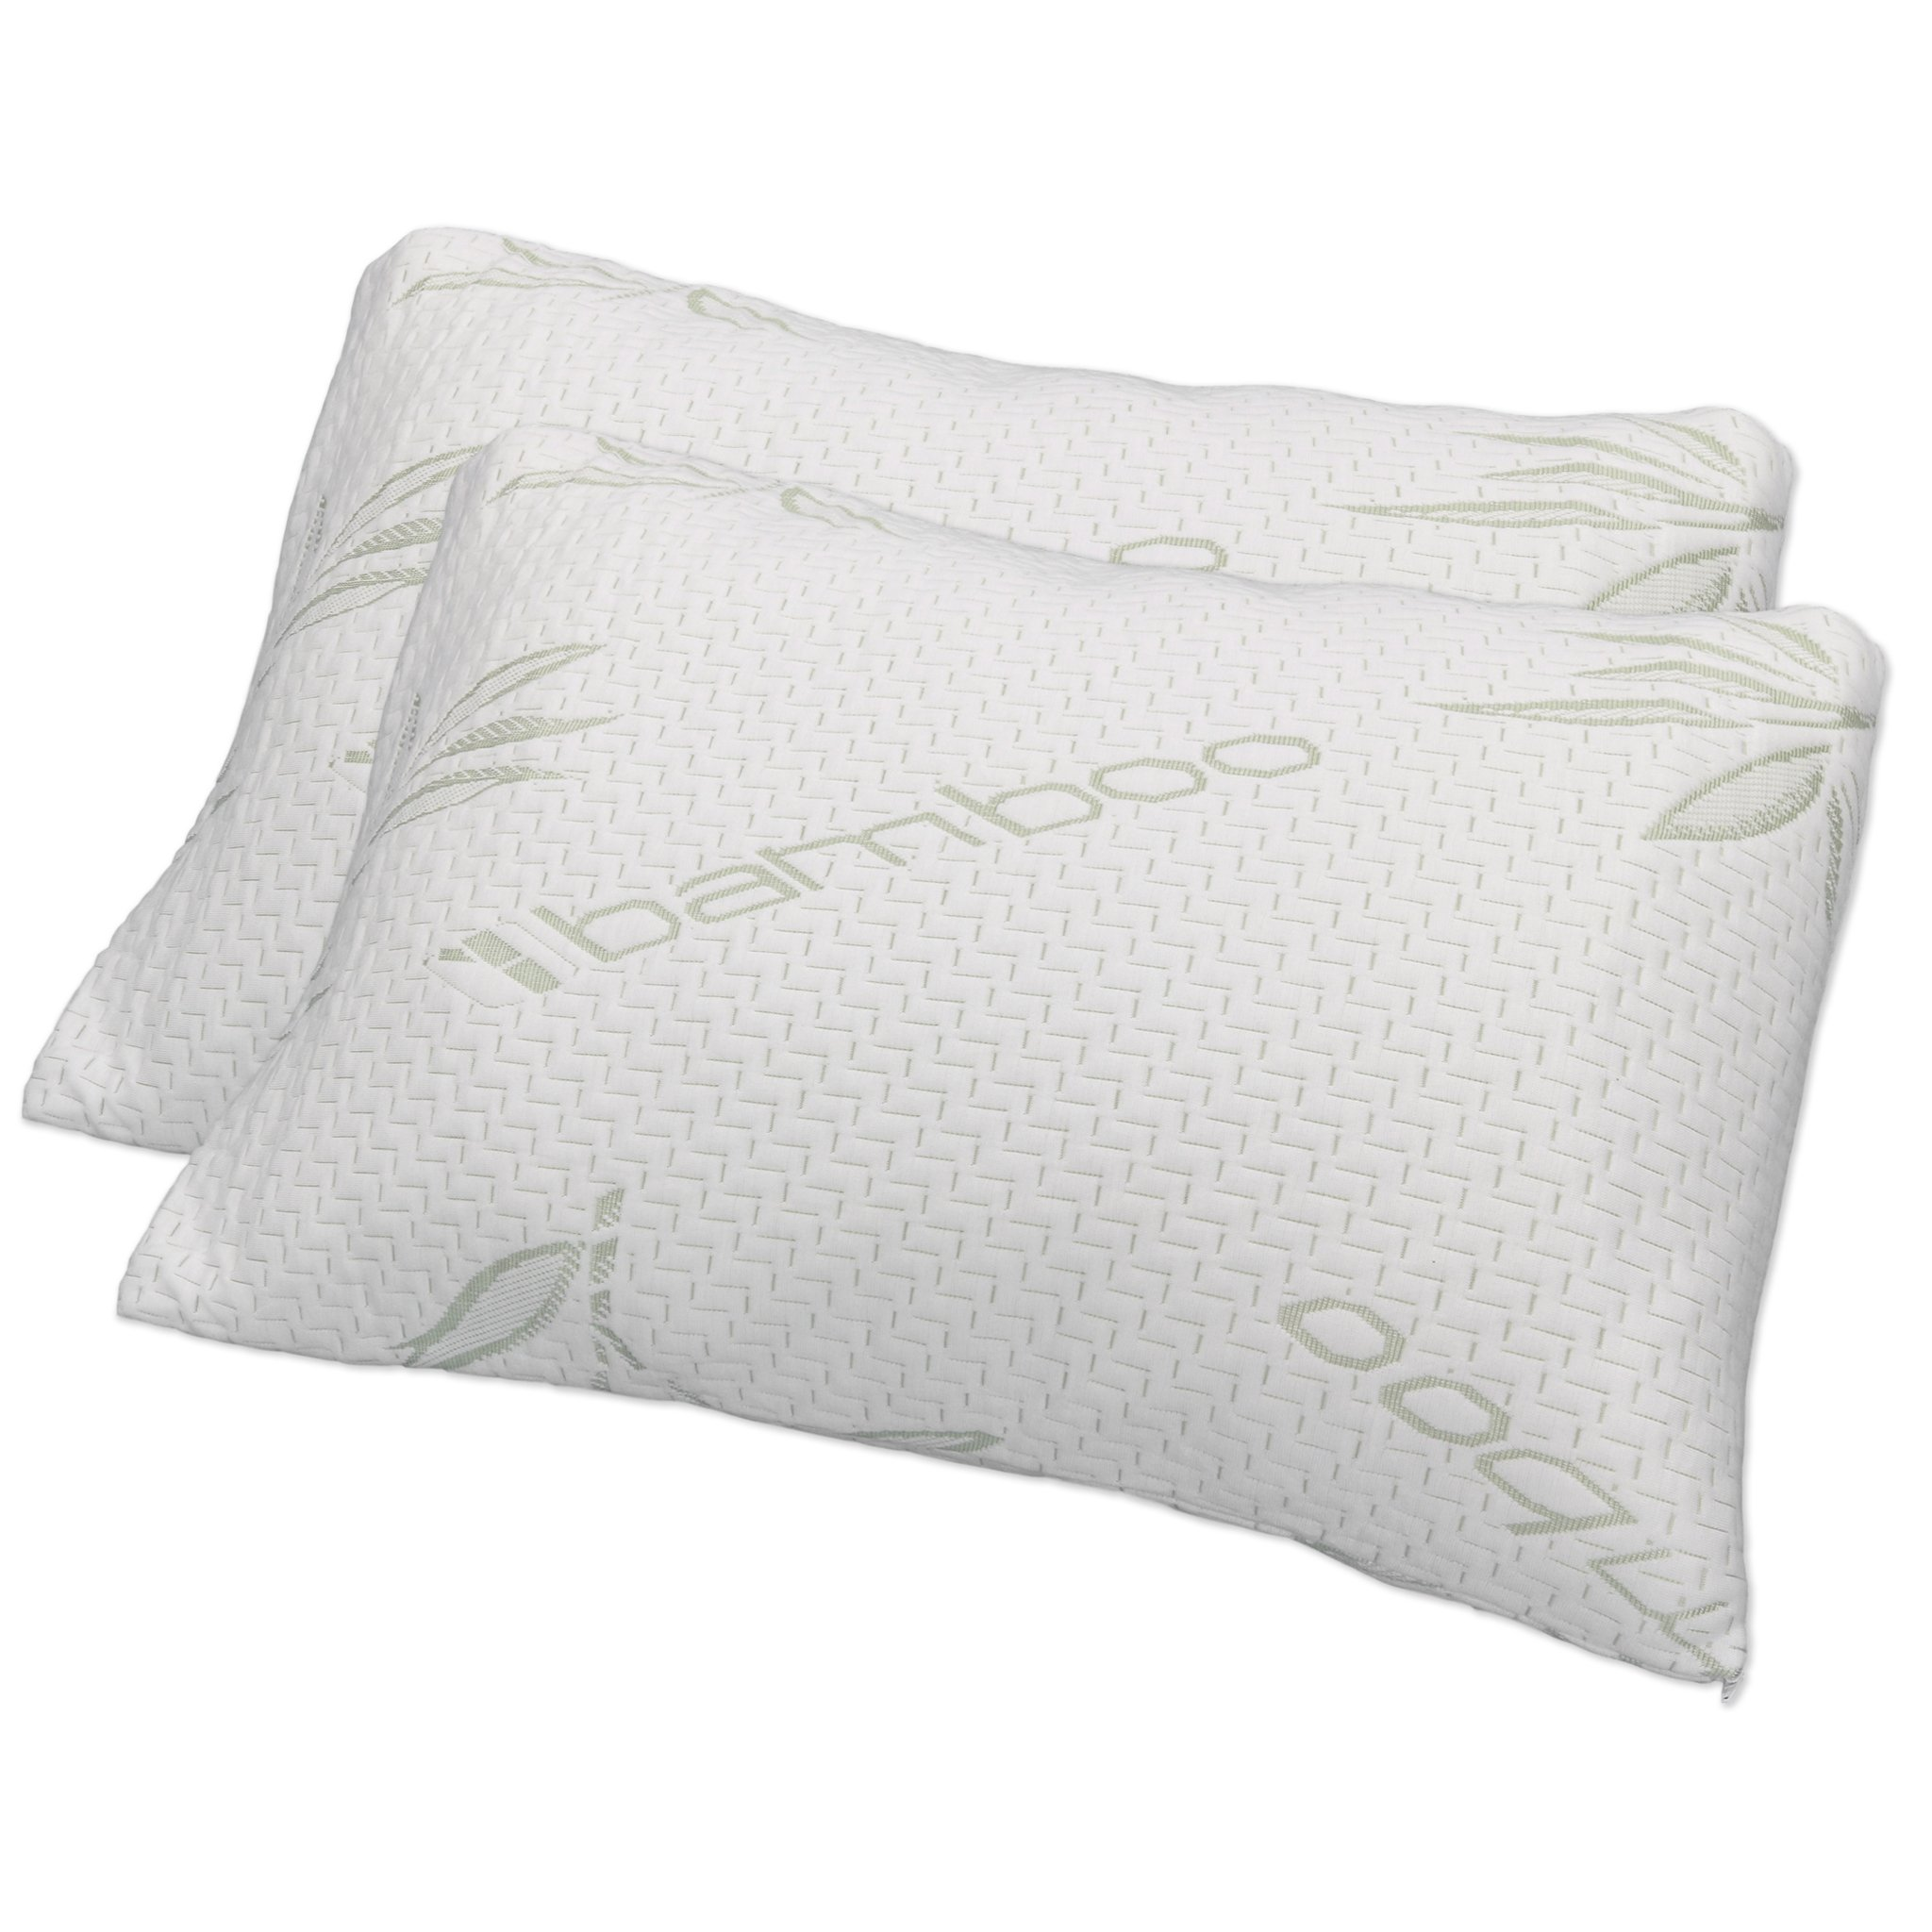 Hotel Comfort Premium Bamboo Memory Foam Pillow Queen Size - Set of 2. Ultra Cool Hypoallergenic Washable Bamboo Cover USA Designed Queen